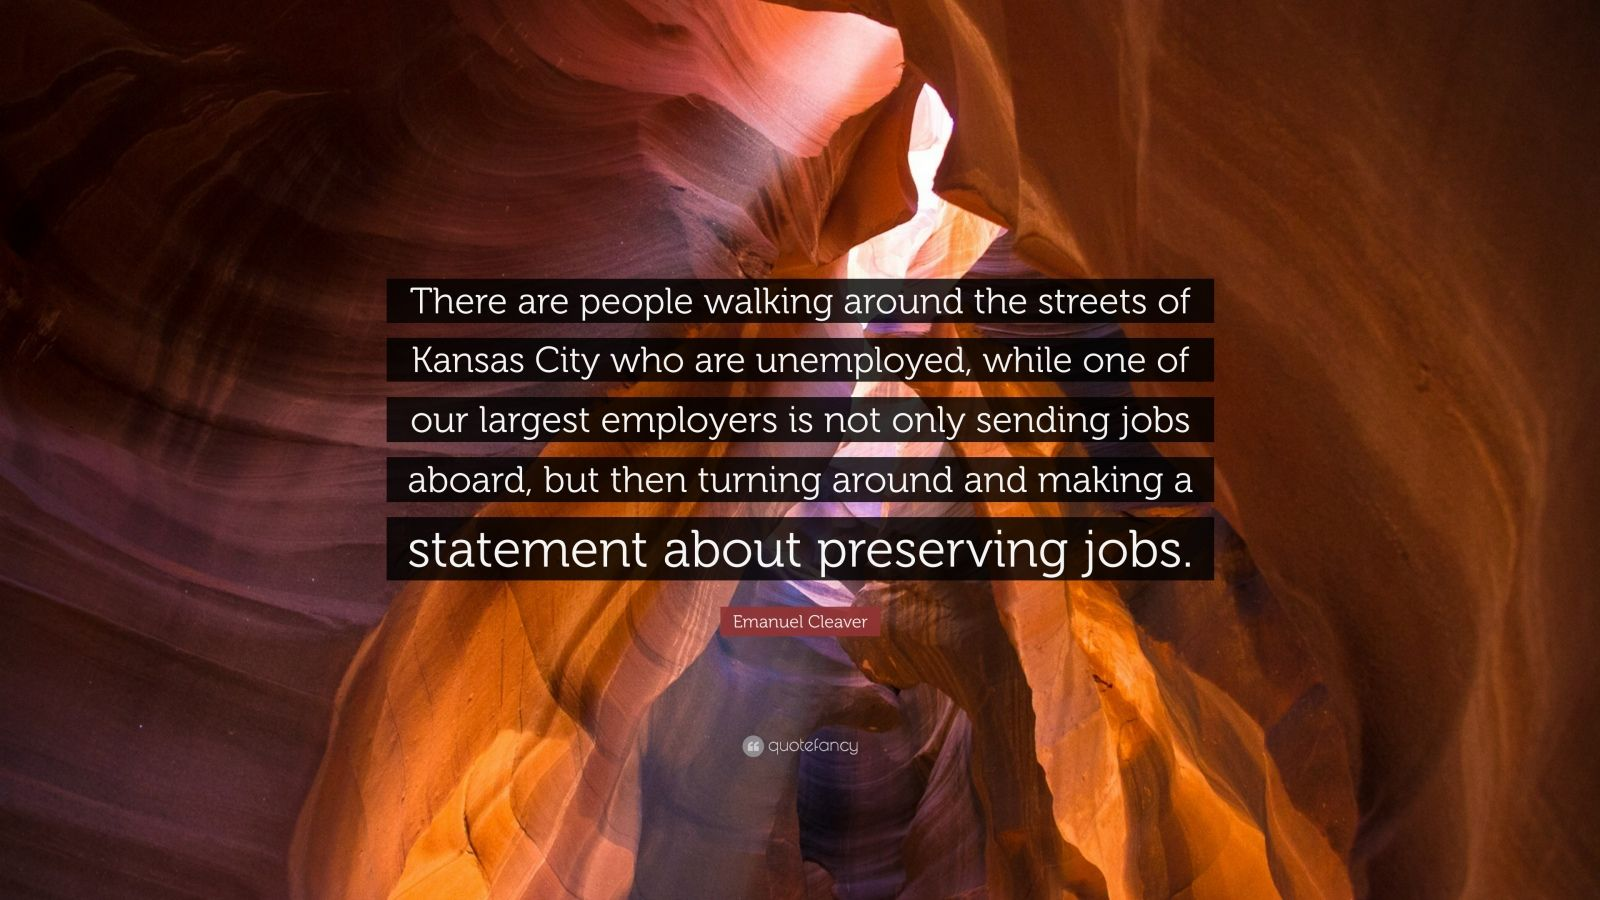 """Emanuel Cleaver Quote: """"There are people walking around the streets of Kansas City who are unemployed, while one of our largest employers is not only sending jobs aboard, but then turning around and making a statement about preserving jobs."""""""